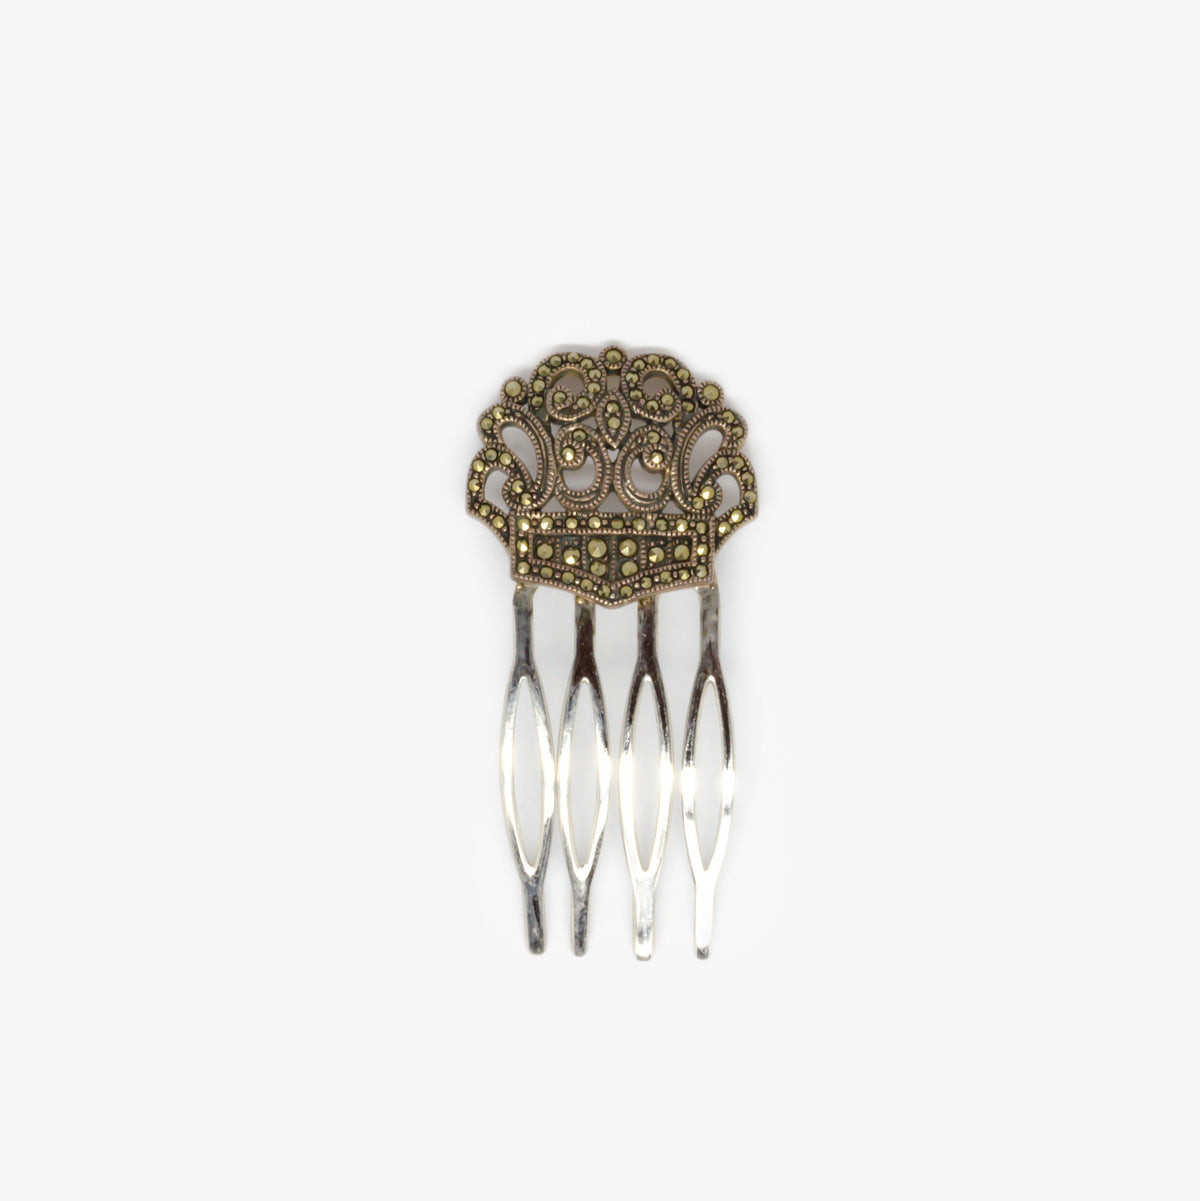 Jordans Jewellers silver marcasite hair slide - Alternate shot 1